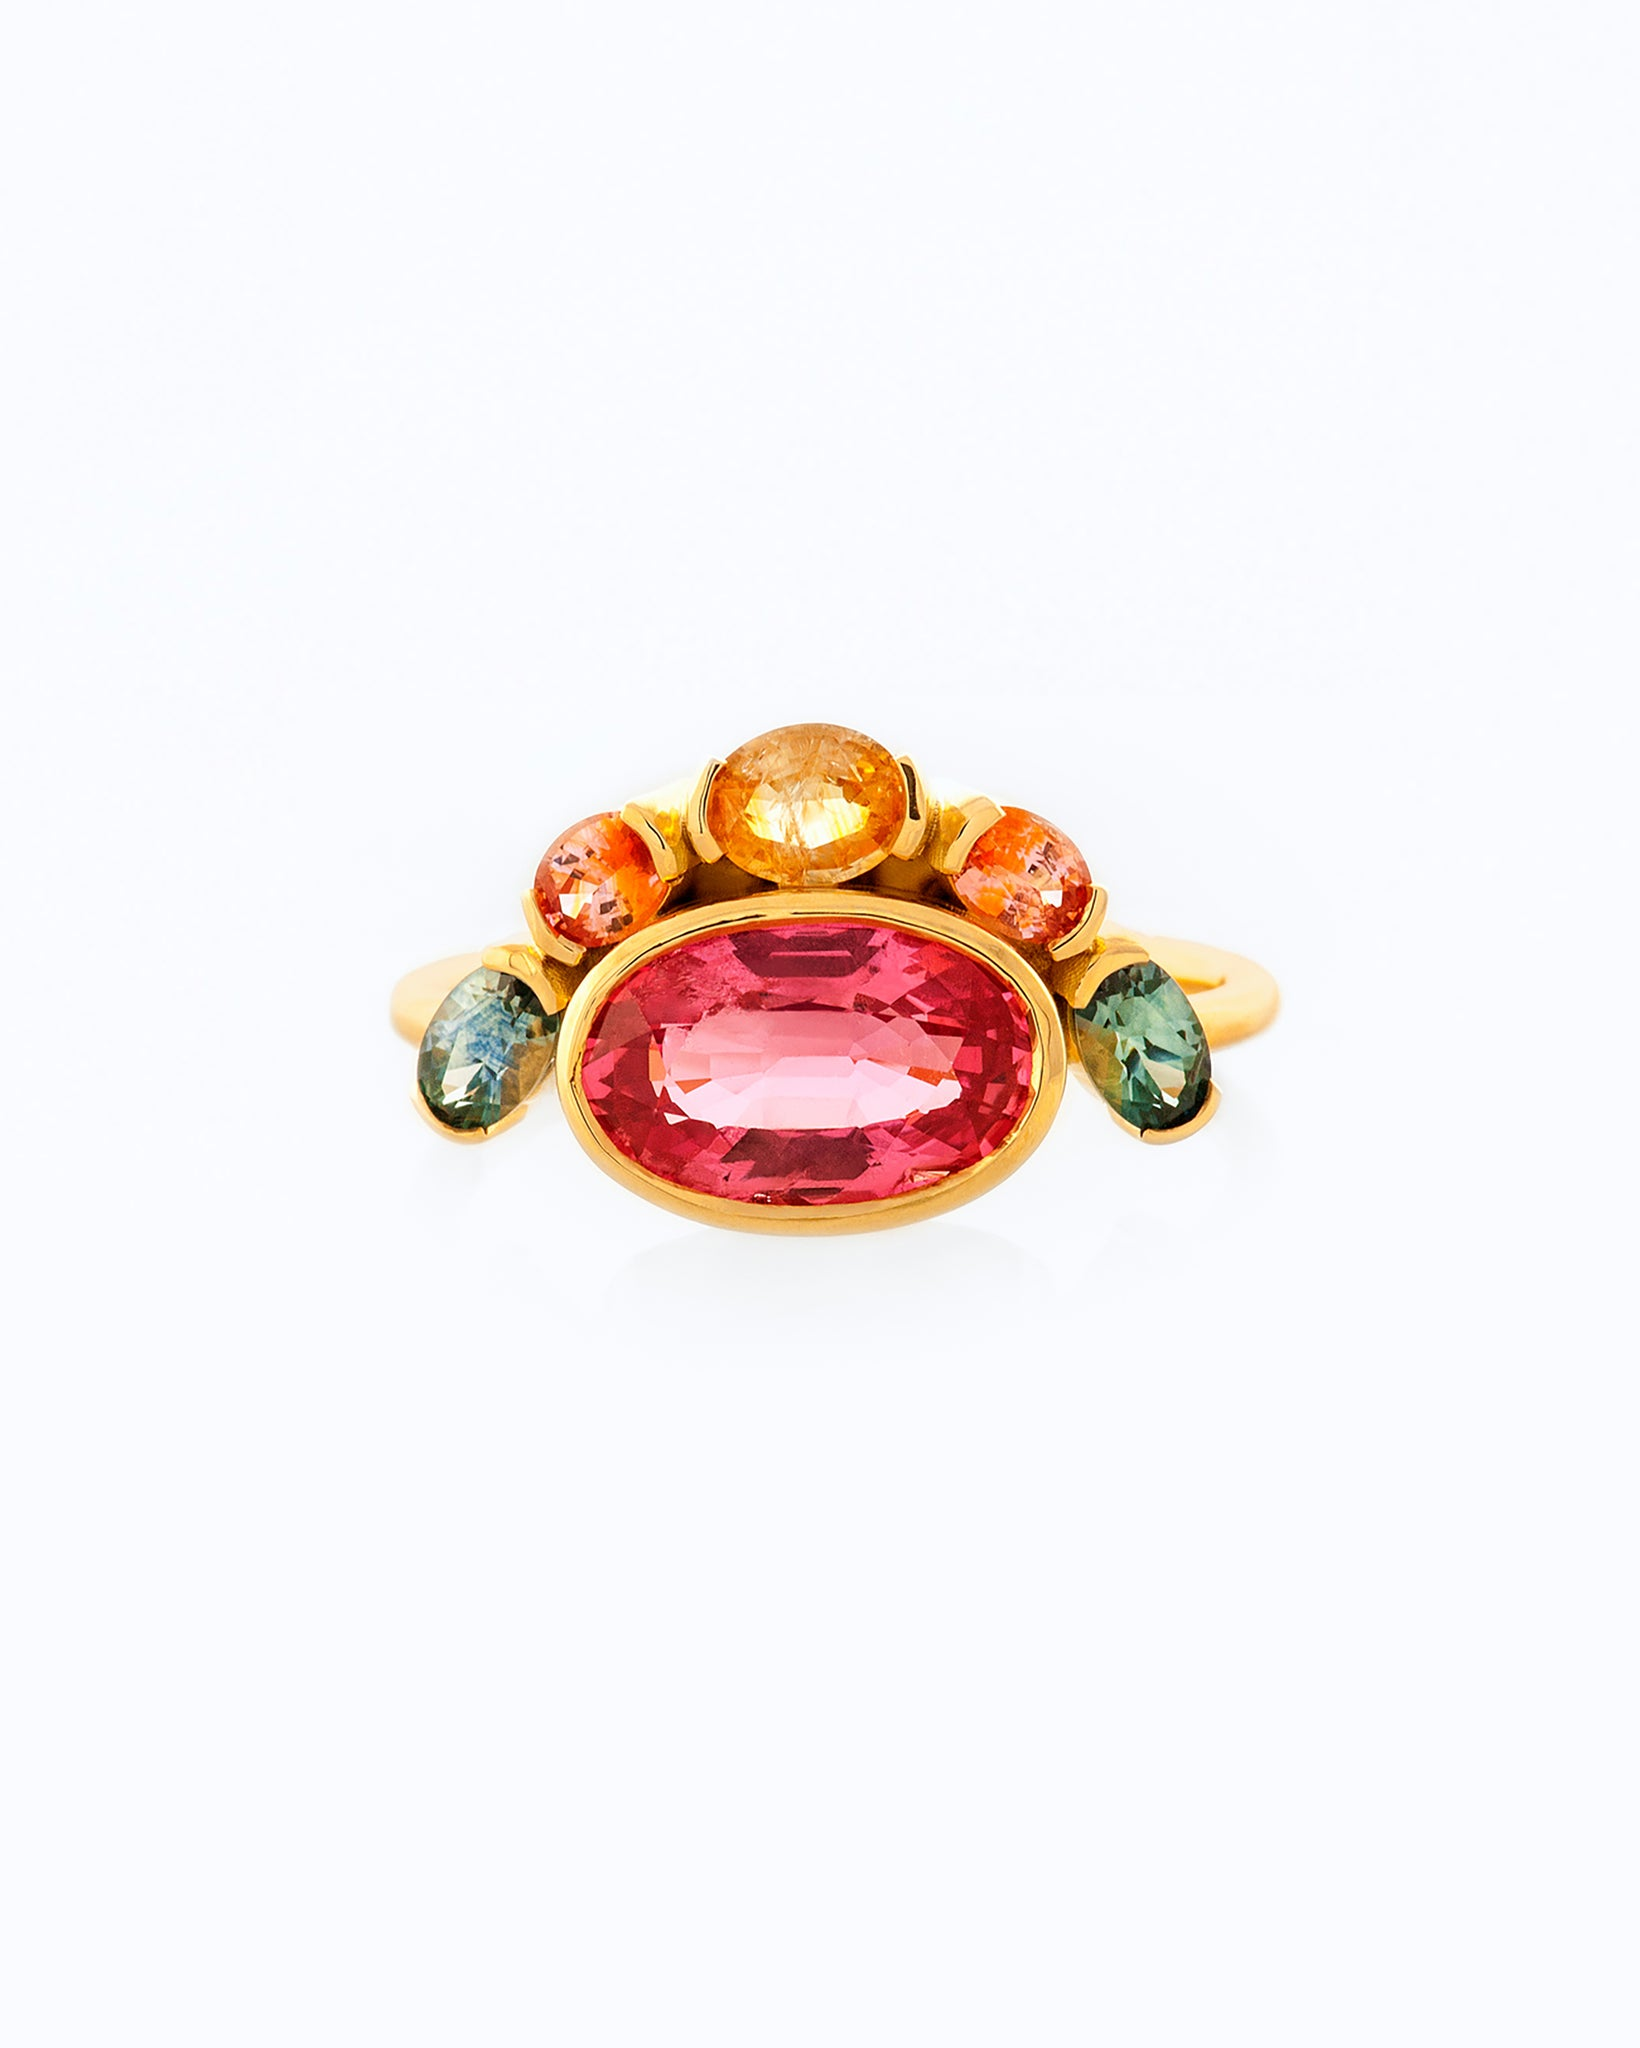 Oval Padparadscha Sapphire Cluster Ring front view